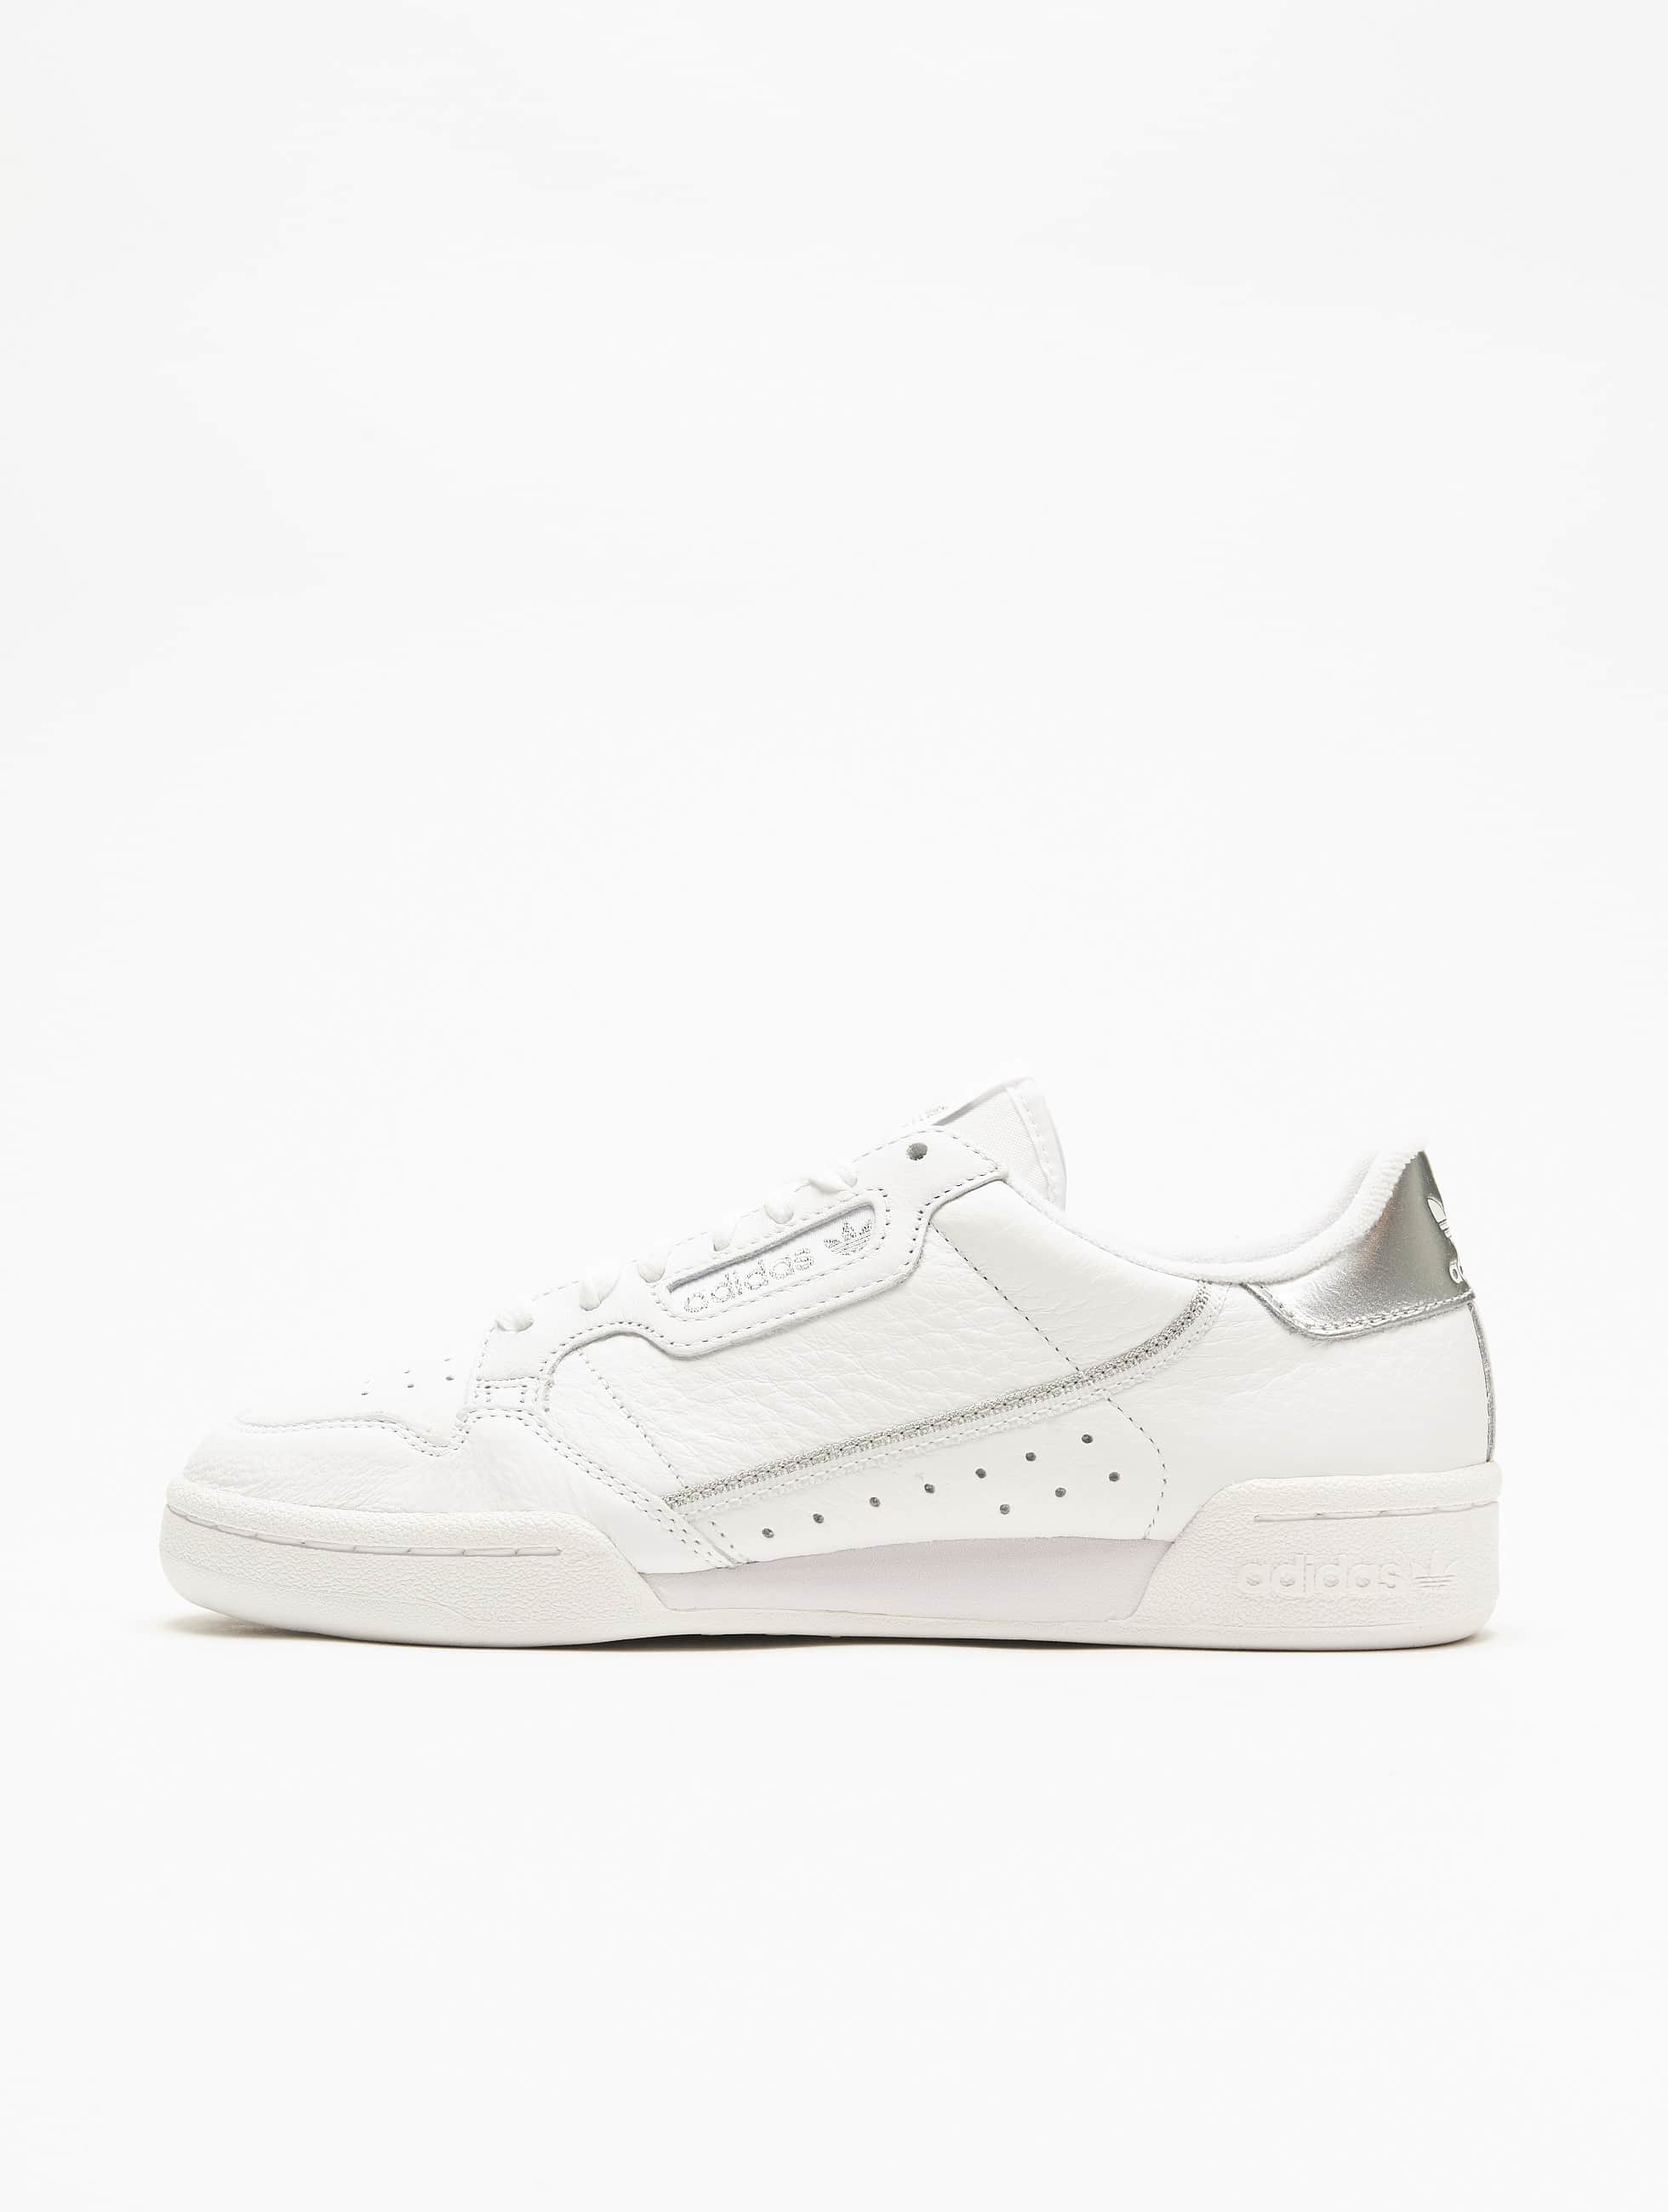 Adidas Originals Continental 80 Sneakers Ftw WhiteFtw WhiteSilvern Met